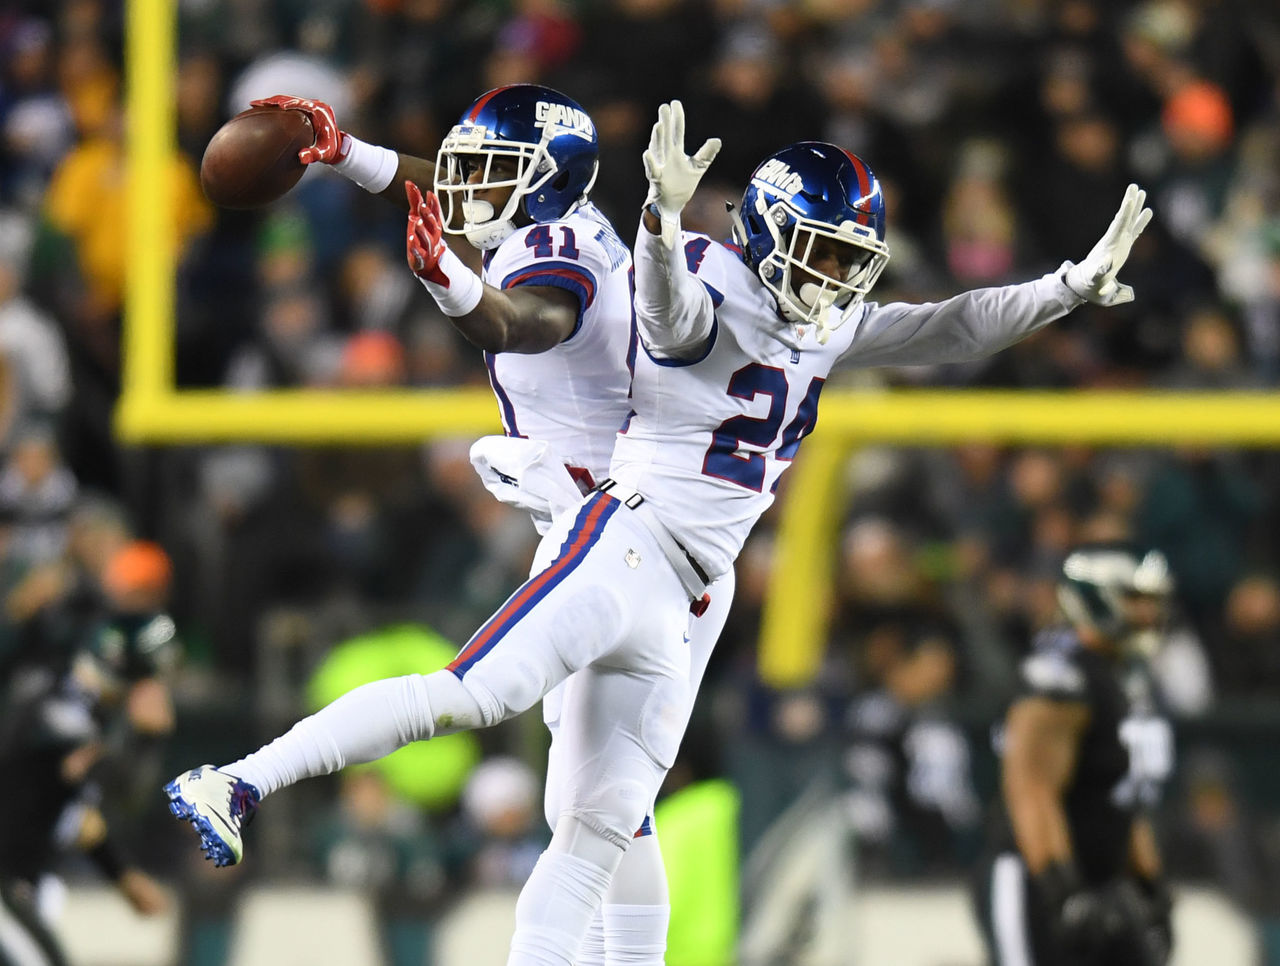 Cropped_2016-12-23t030040z_1907638200_nocid_rtrmadp_3_nfl-new-york-giants-at-philadelphia-eagles